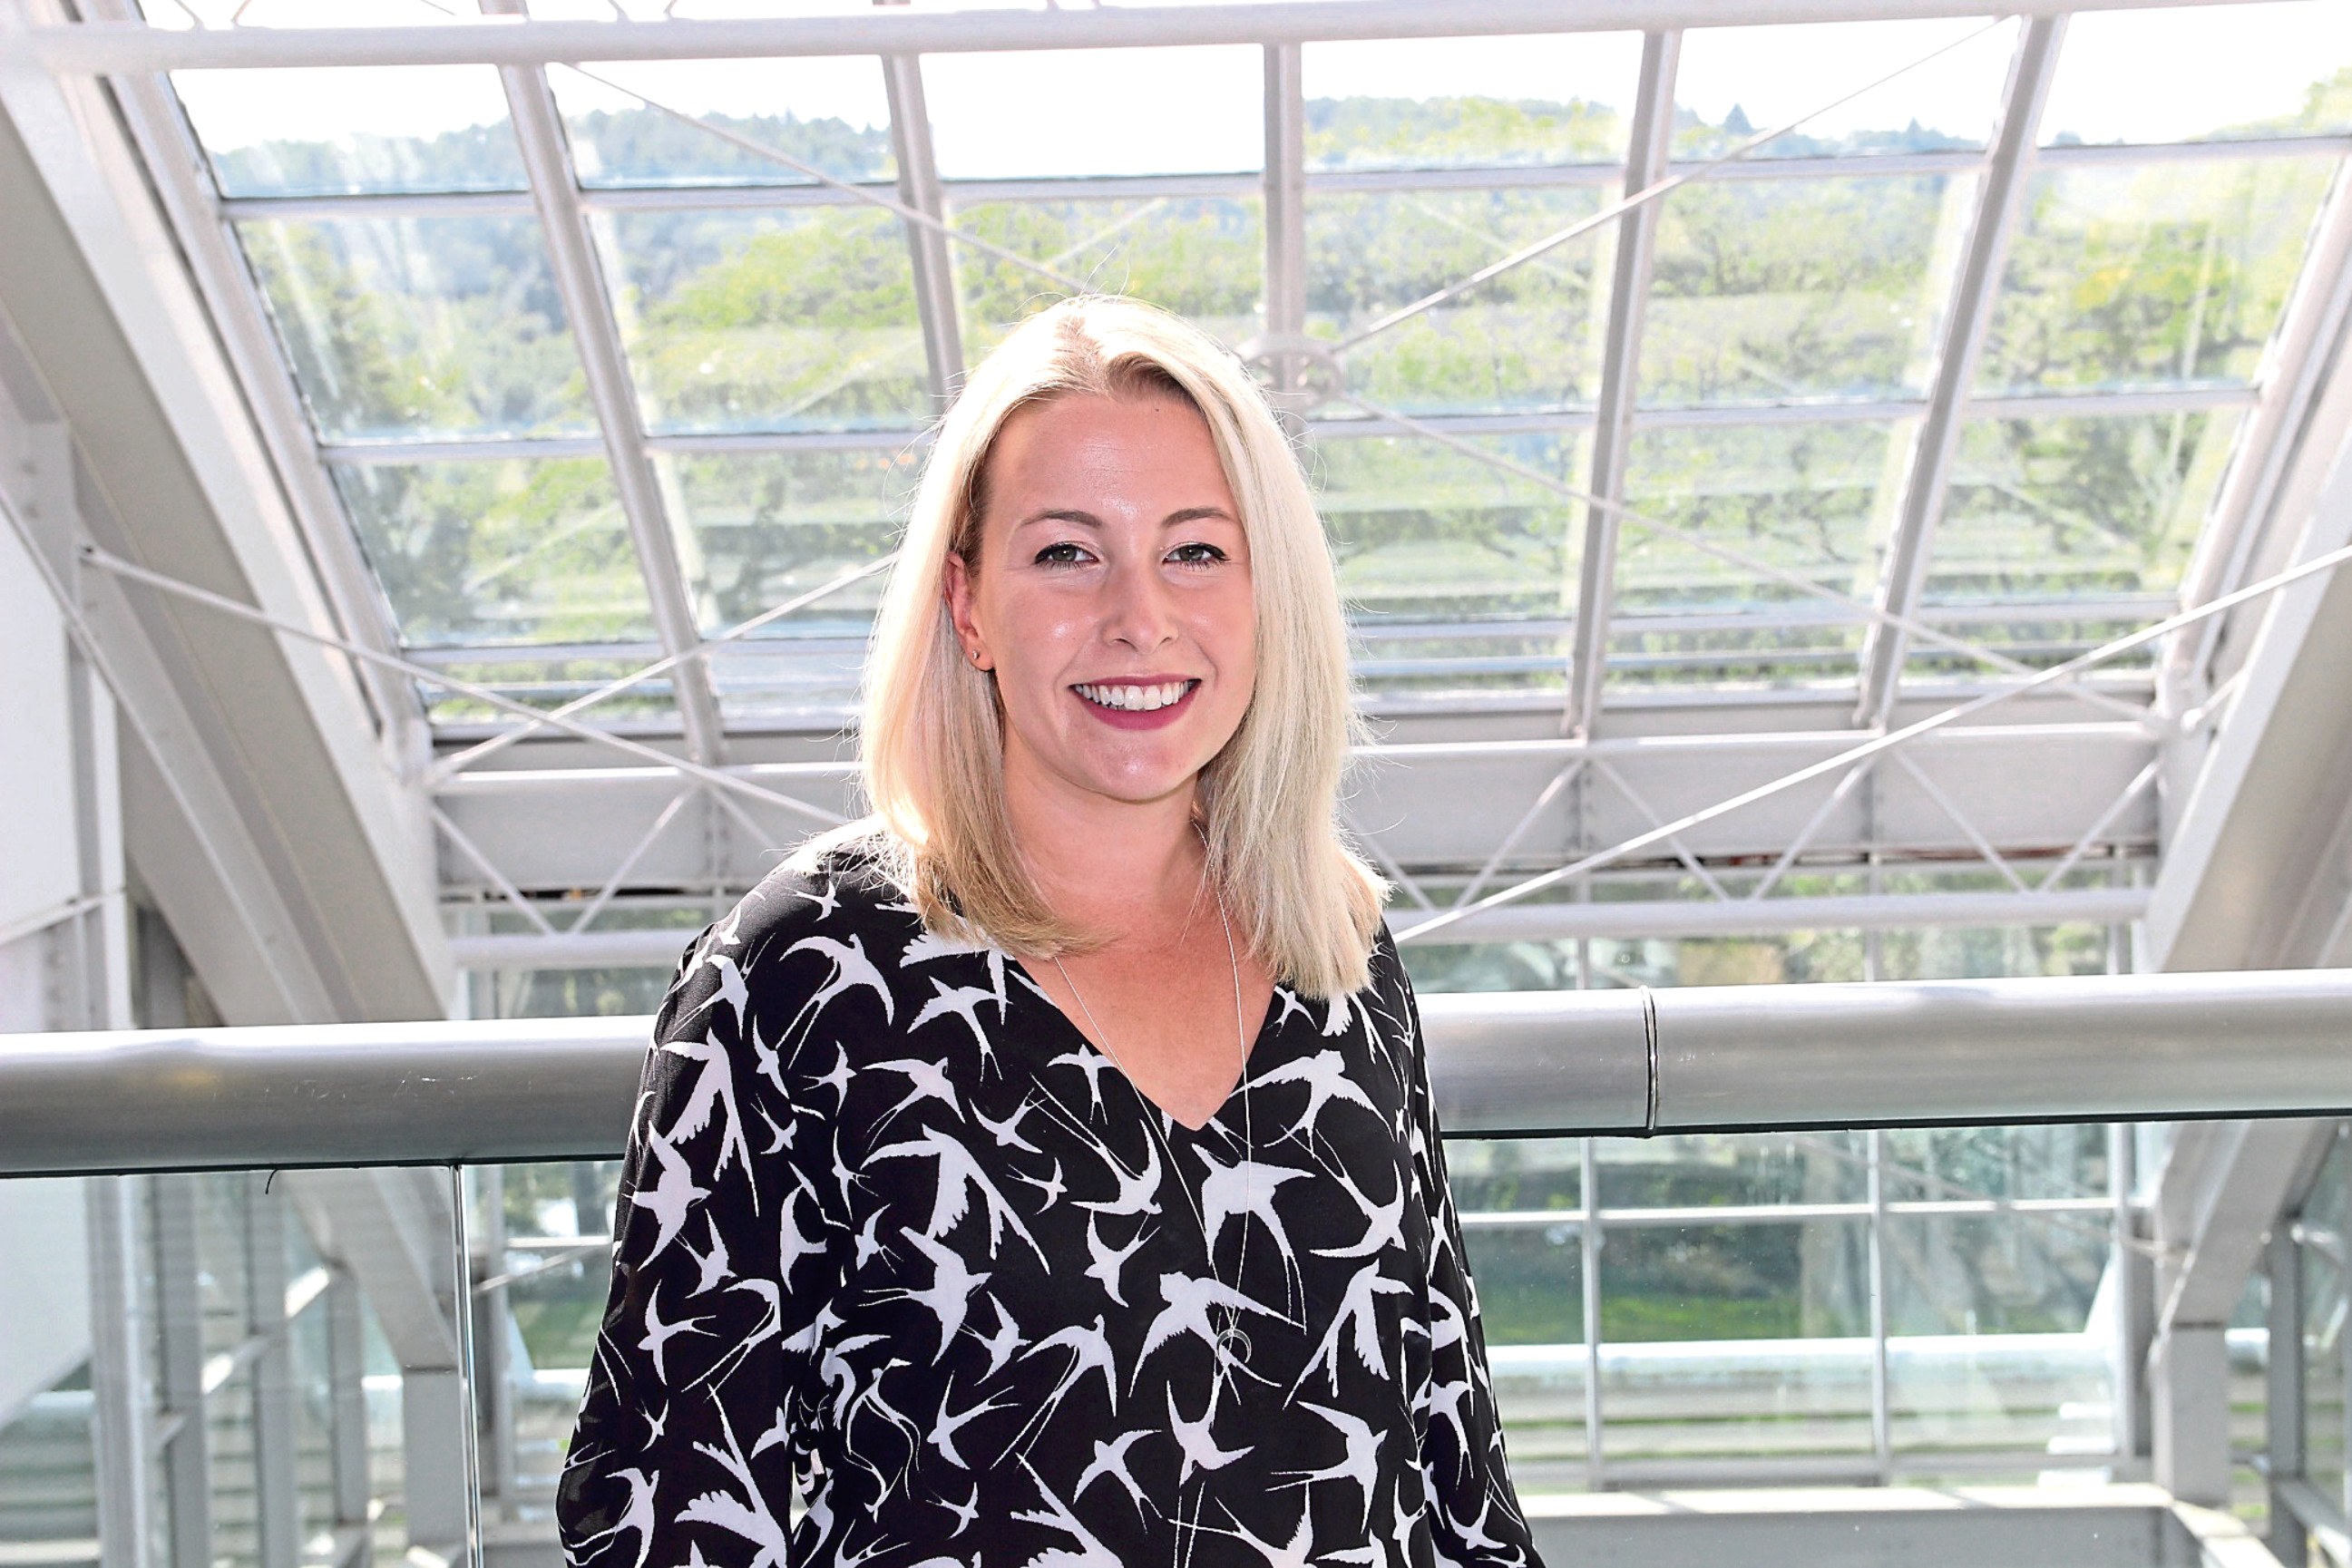 Fiona Gibb, Senior Midwifery Lecturer and Lead Midwife for Education at RGU